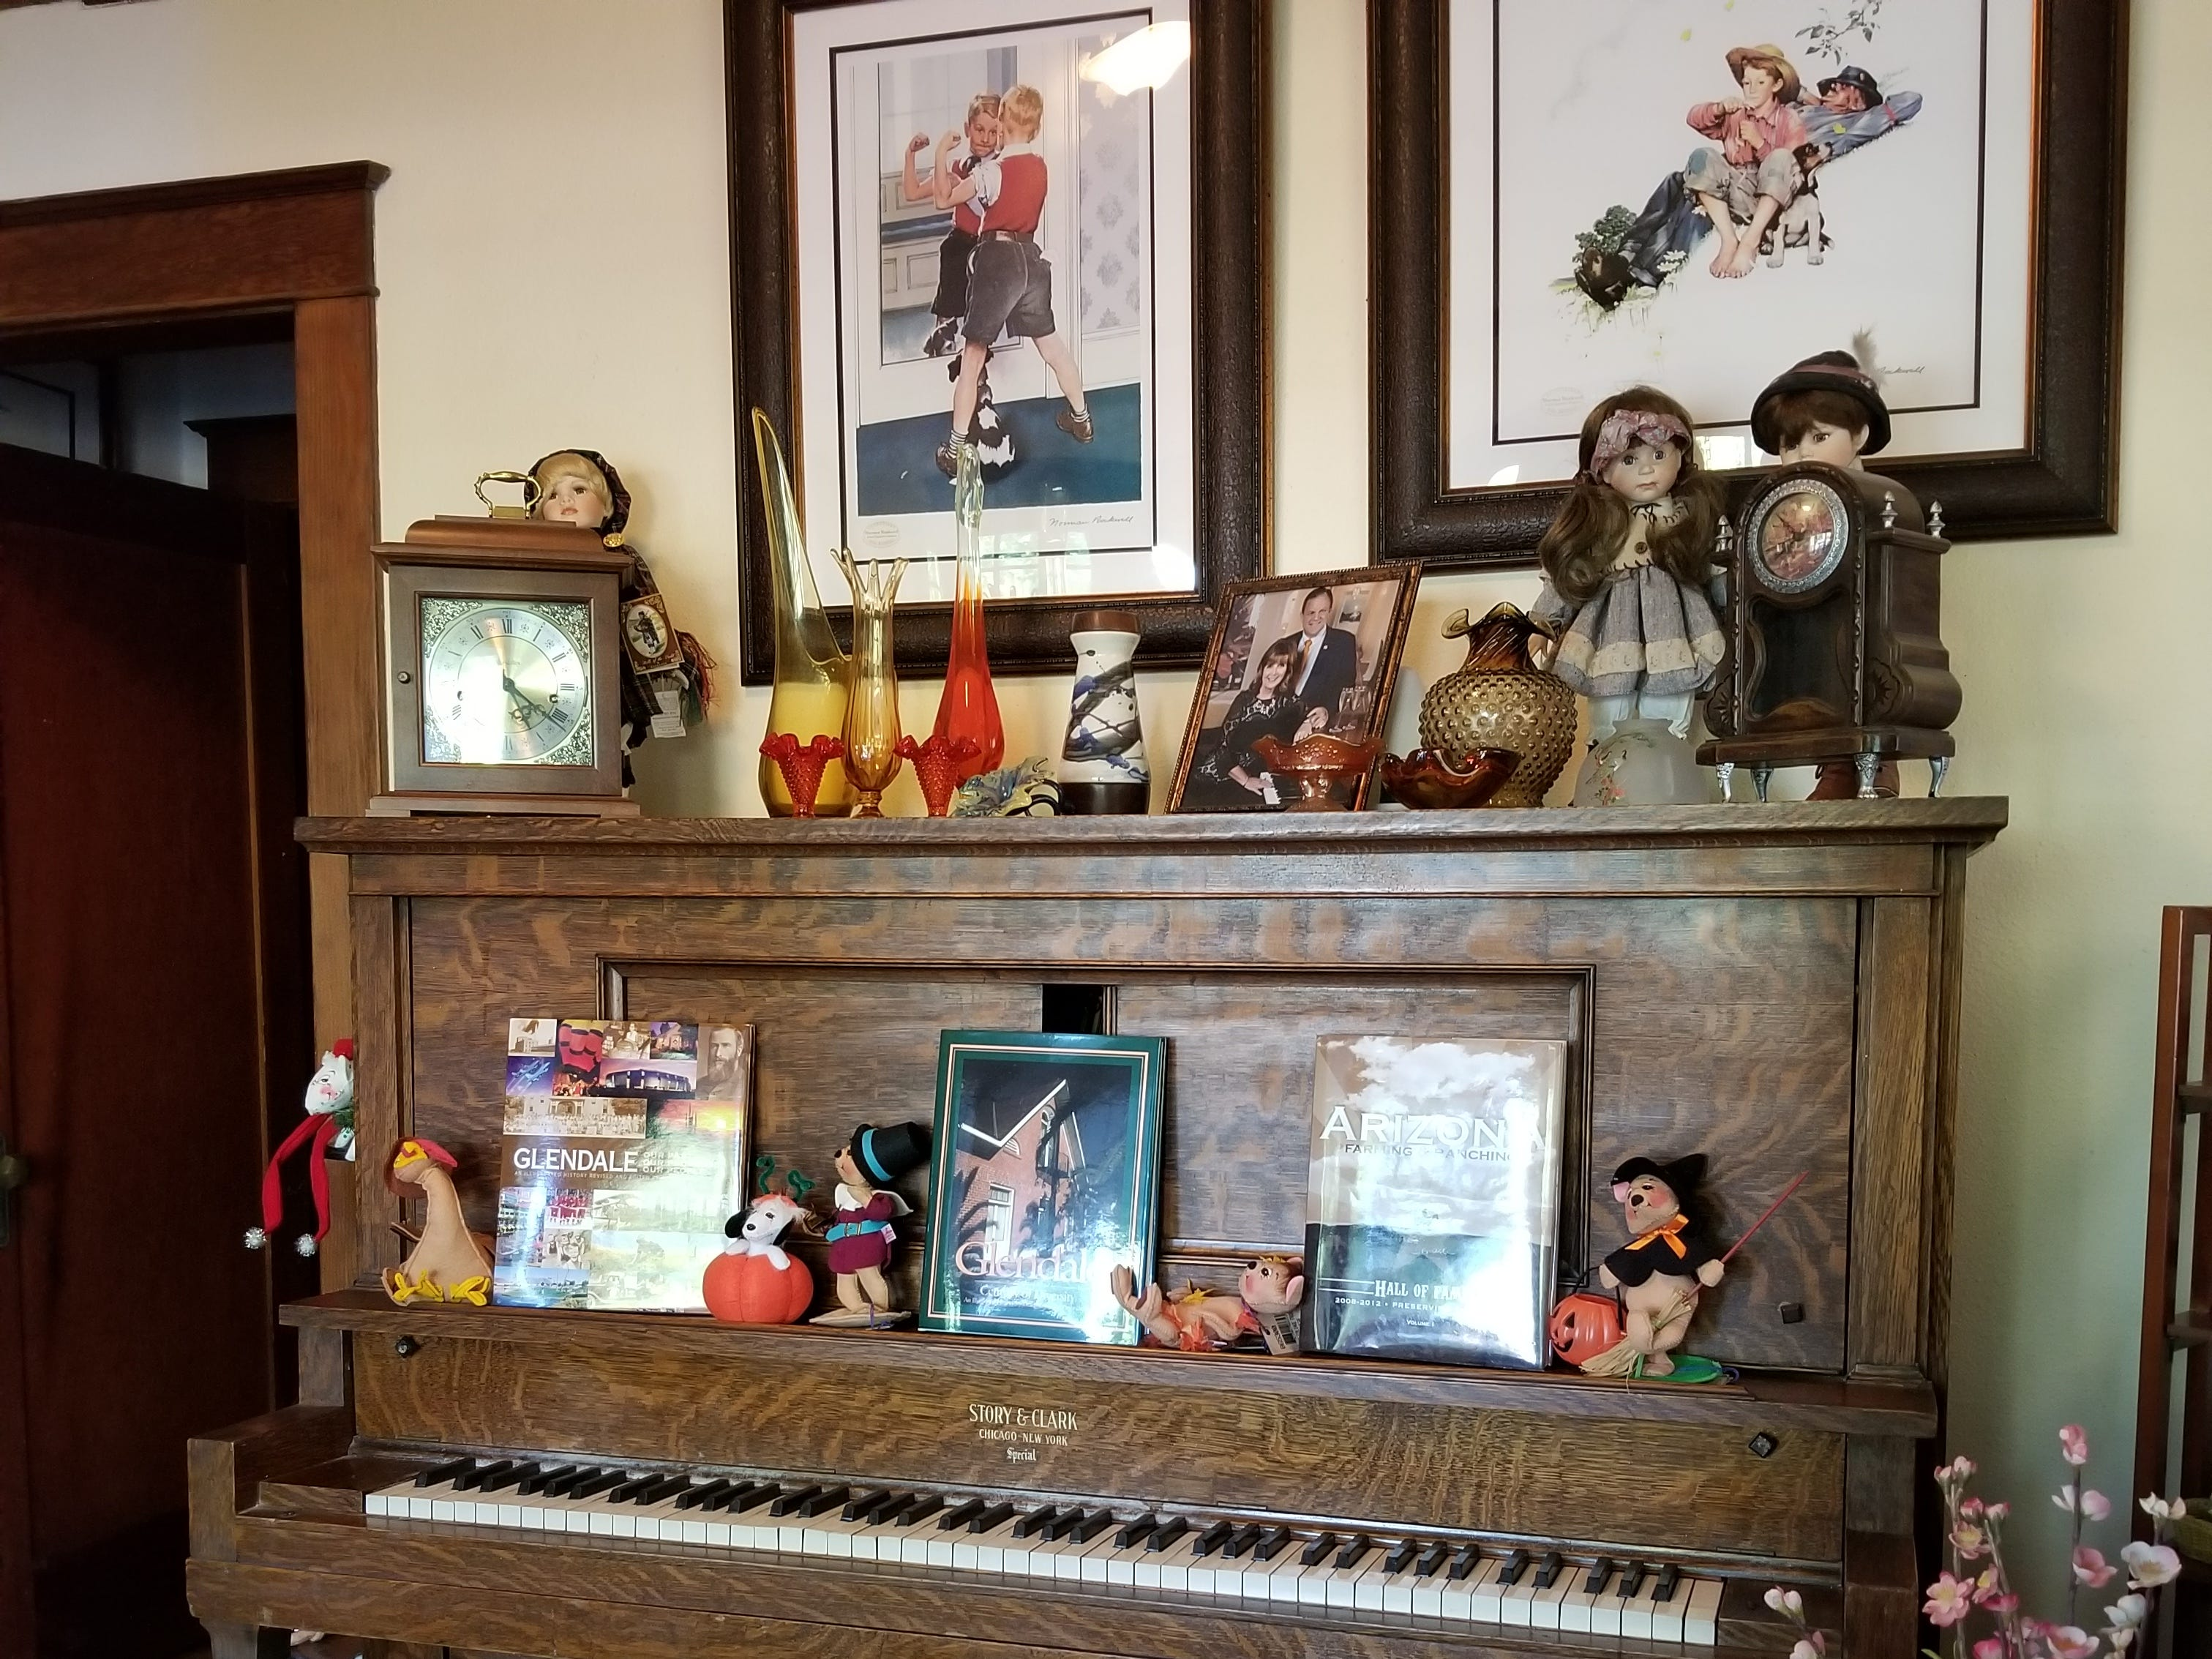 An impressive Story & Clark antique piano holds court in the Zomok's parlor.